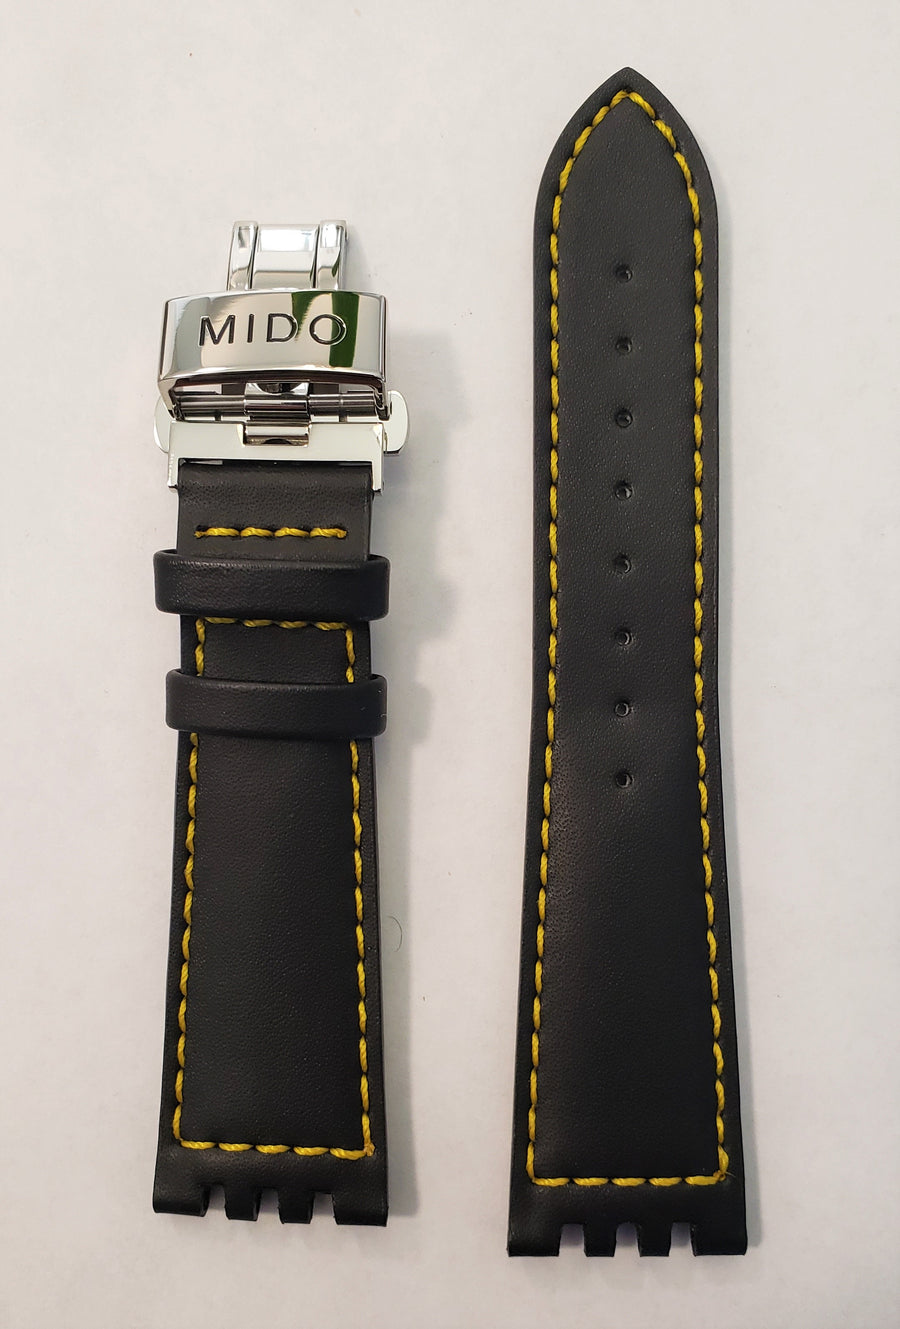 Mido All Dial 8341 Black Leather Watch Band - WATCHBAND EXPERT